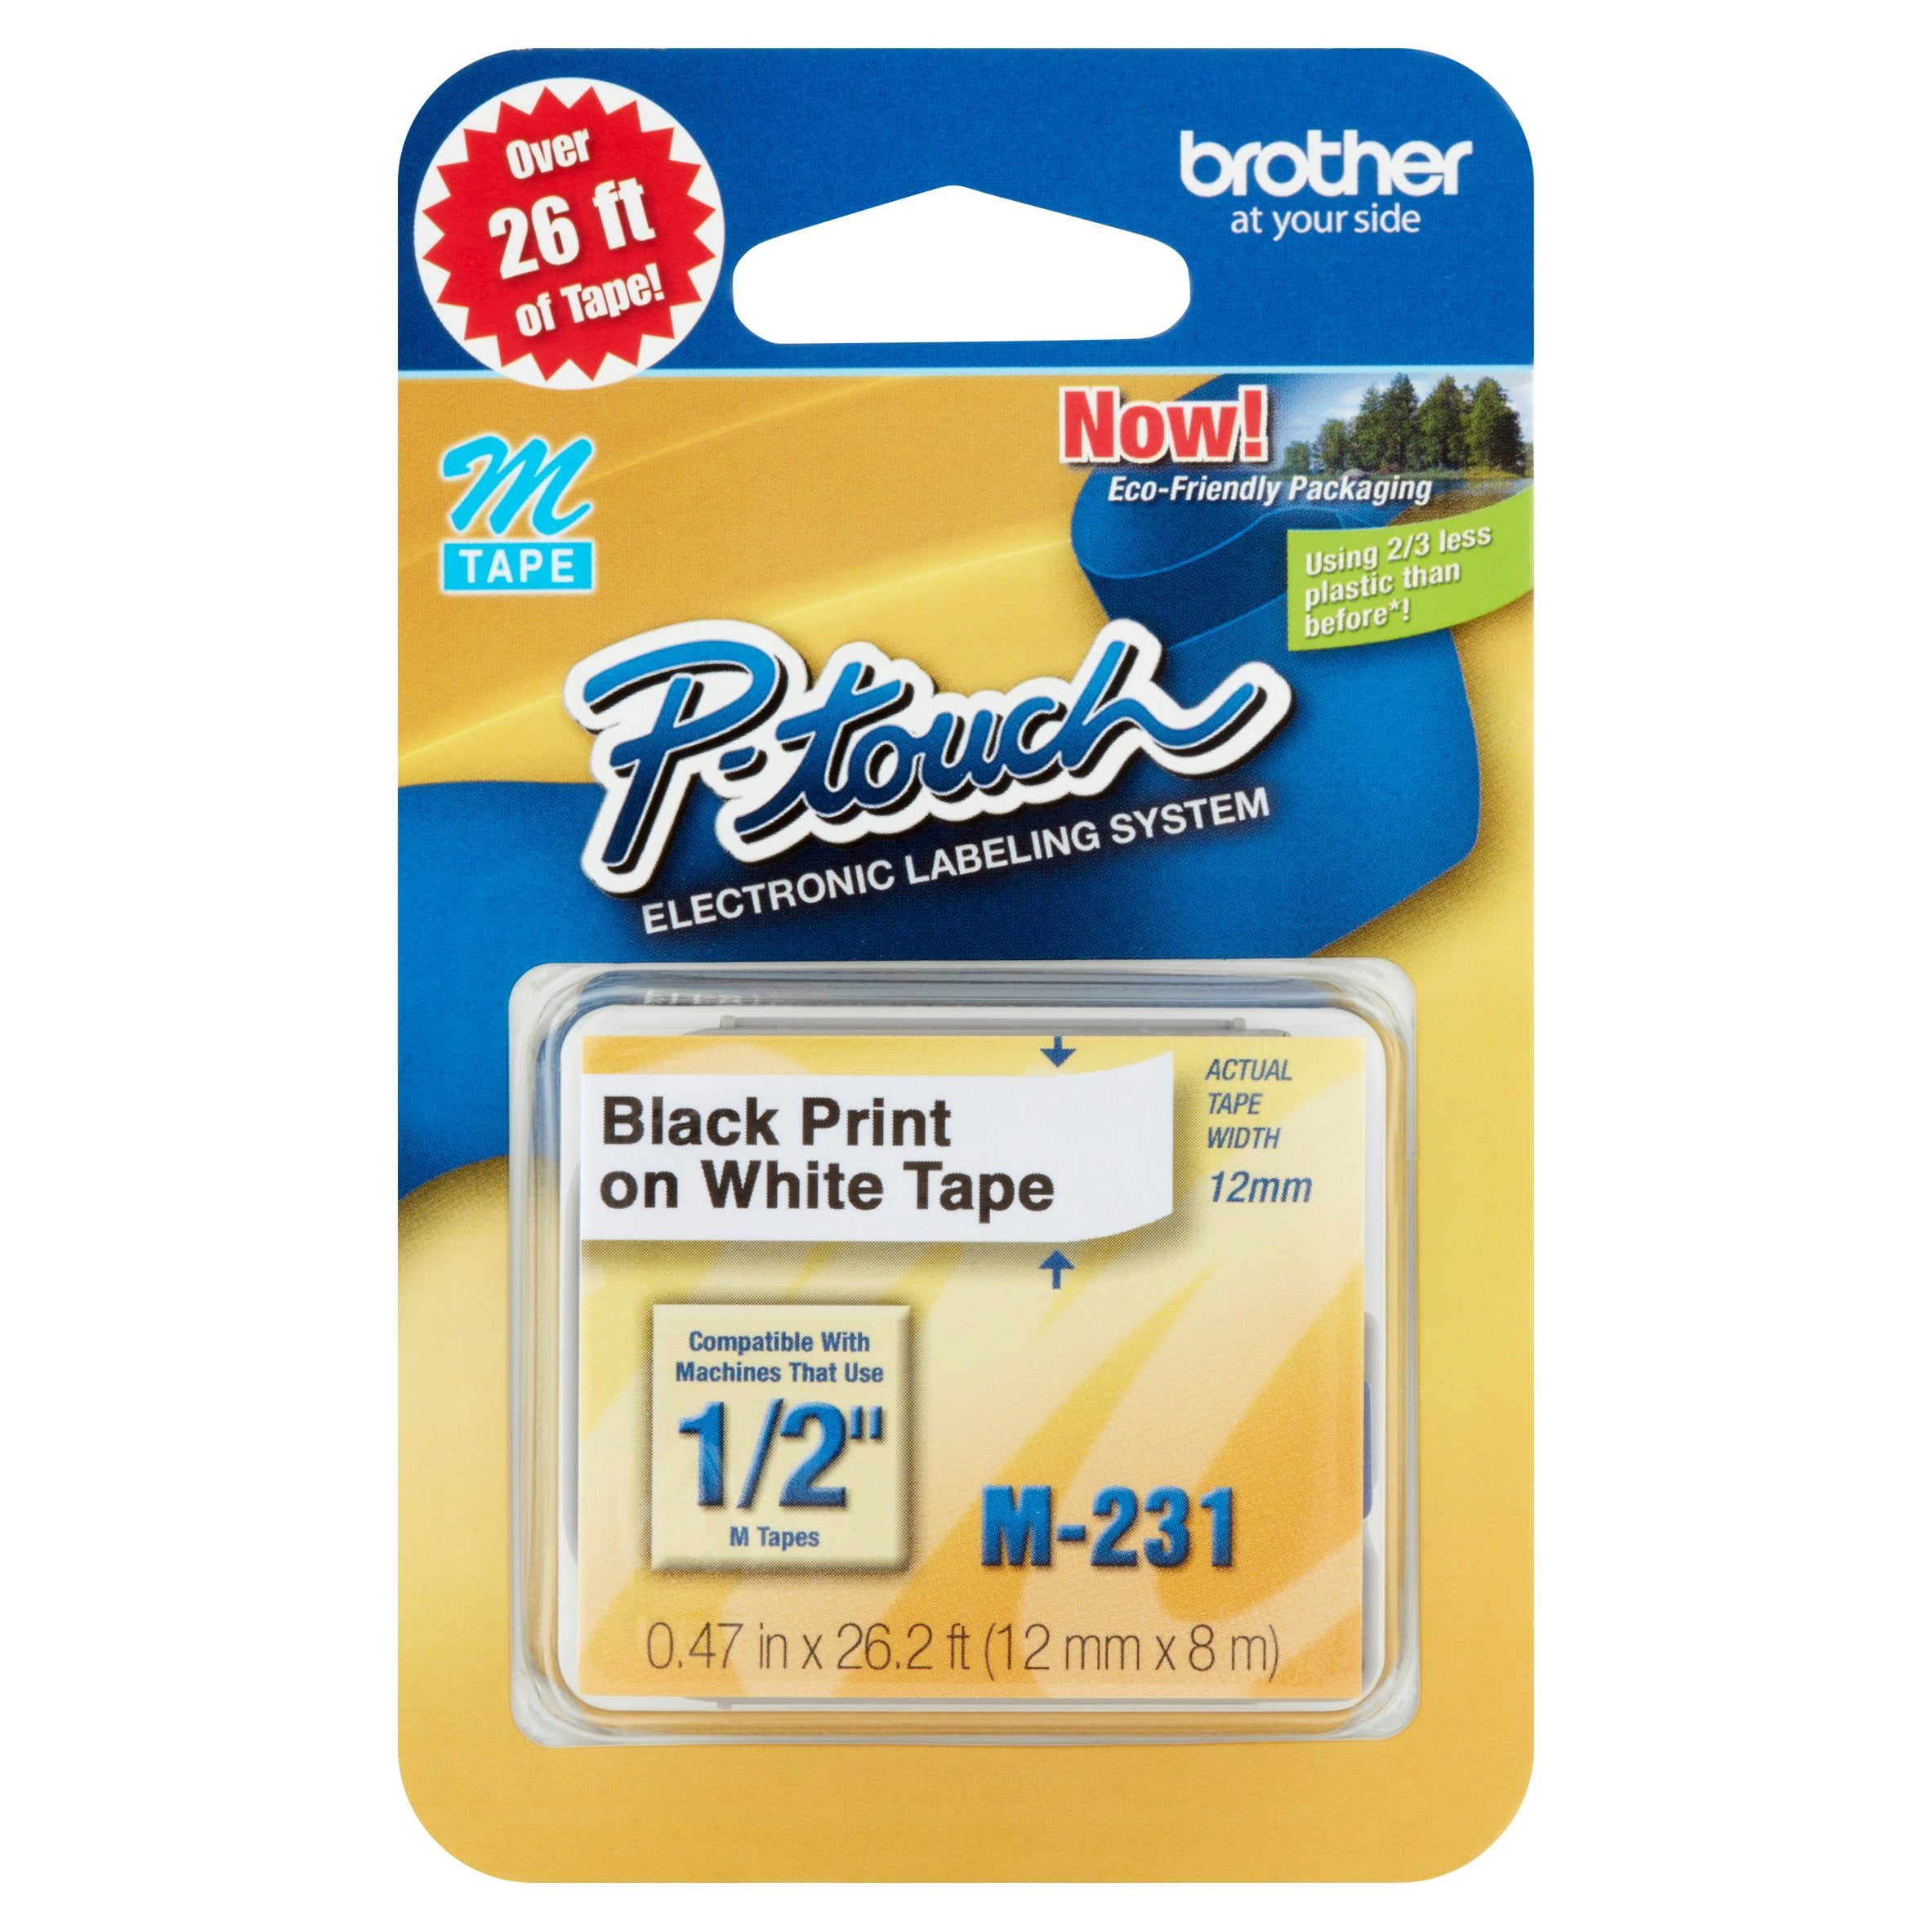 Brother P-touch Electronic Labeling System Tape - Walmart.com